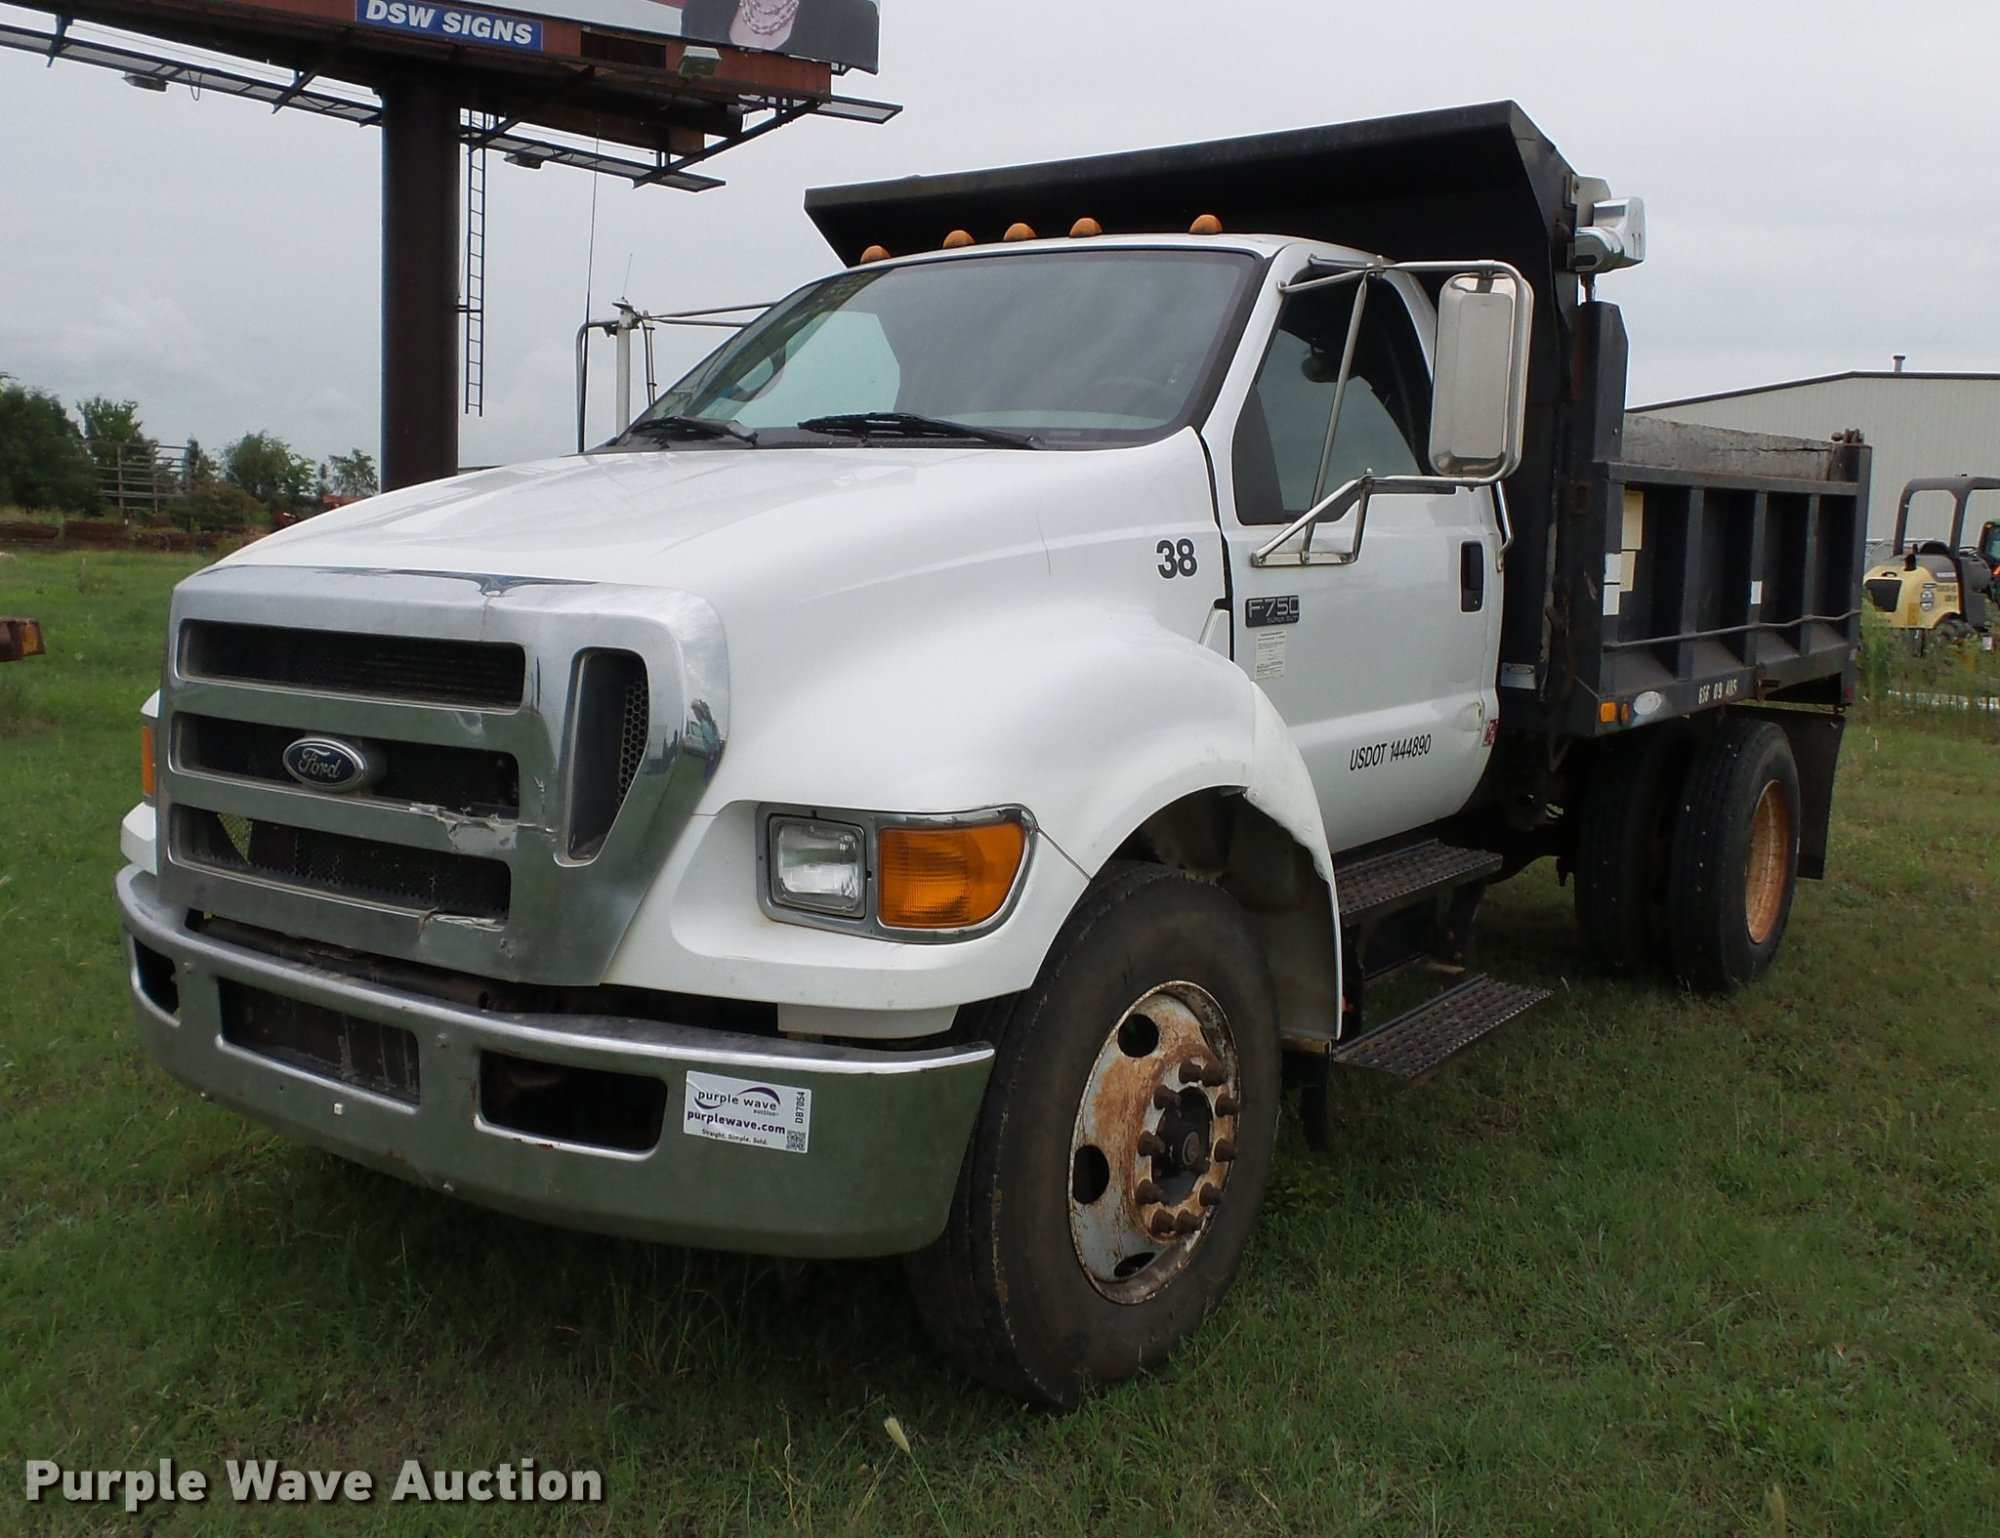 hight resolution of db7054 image for item db7054 2005 ford f750